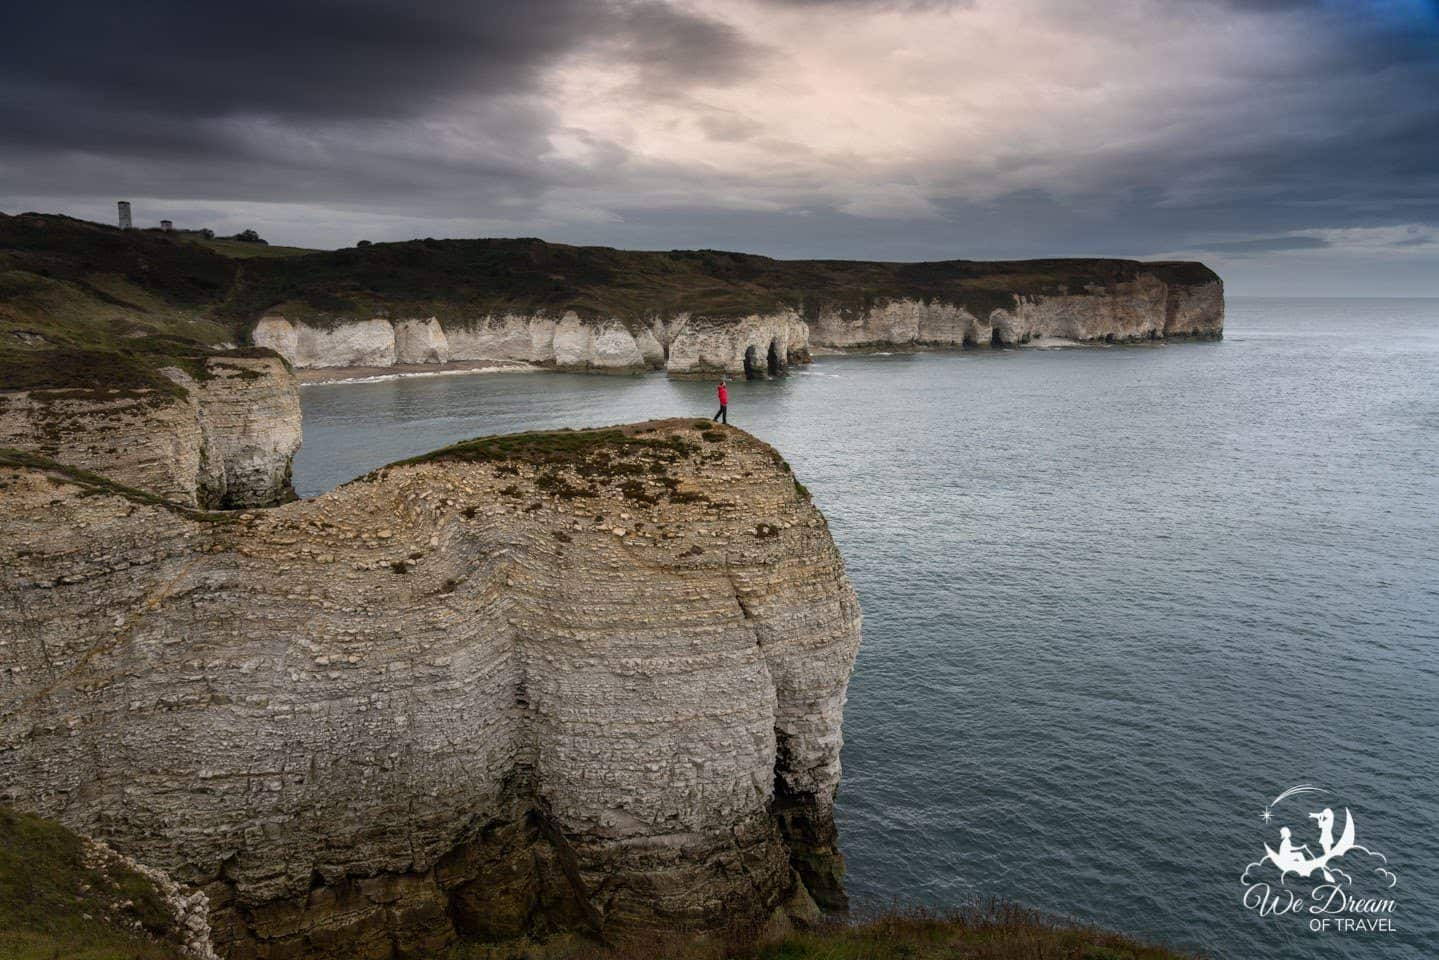 Moody photography of Flamborough Cliffs